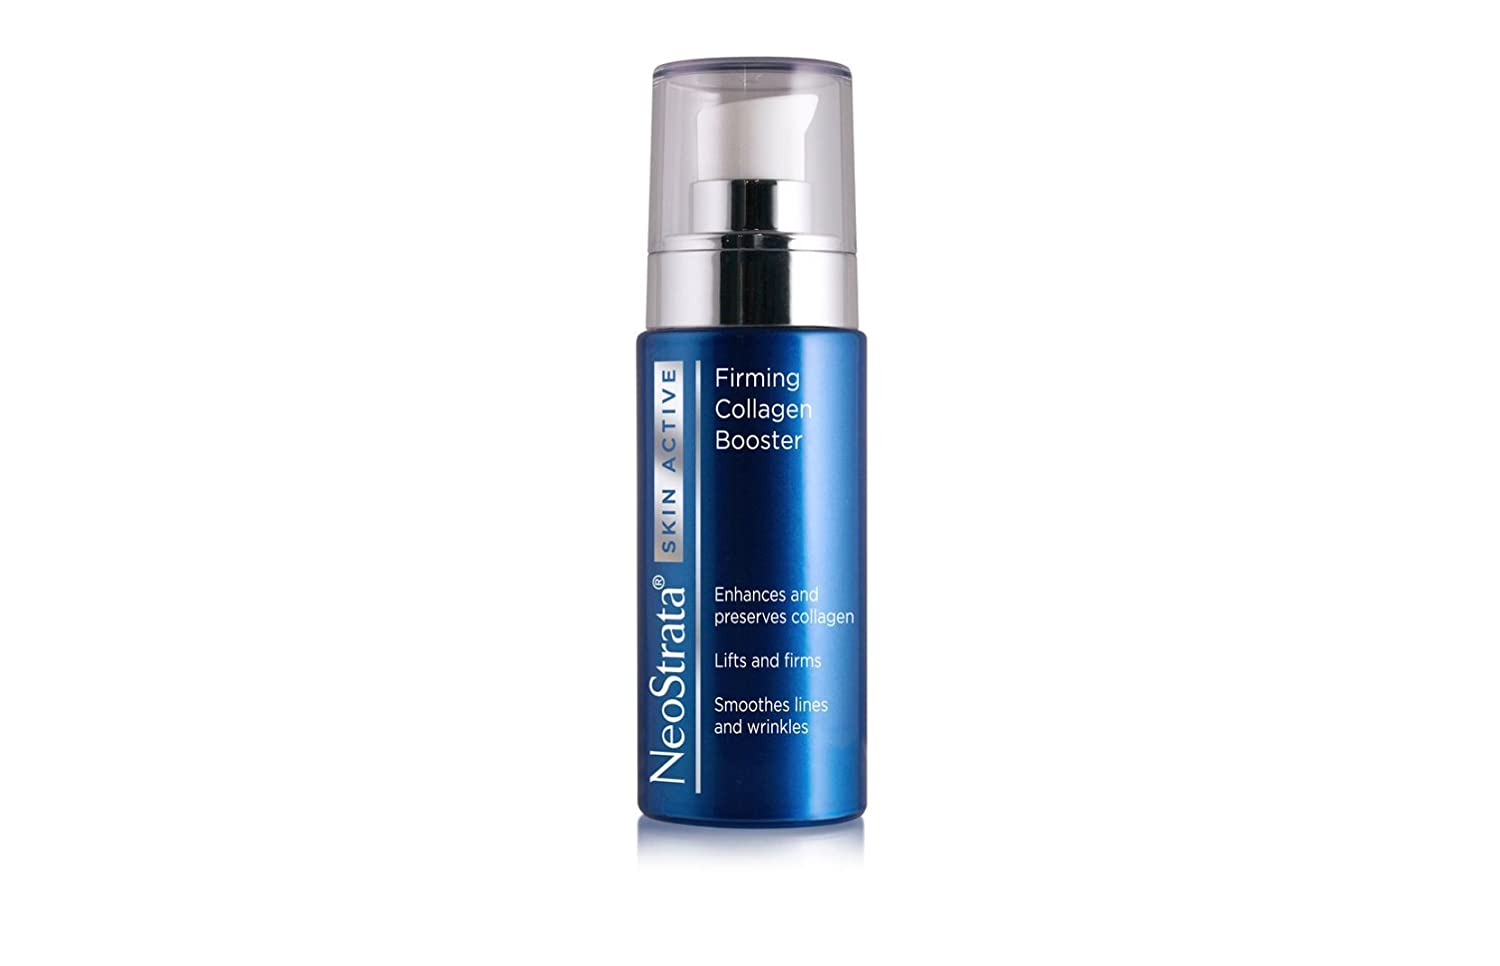 NeoStrata skin active firming collagen booster 1oz 96872 5009